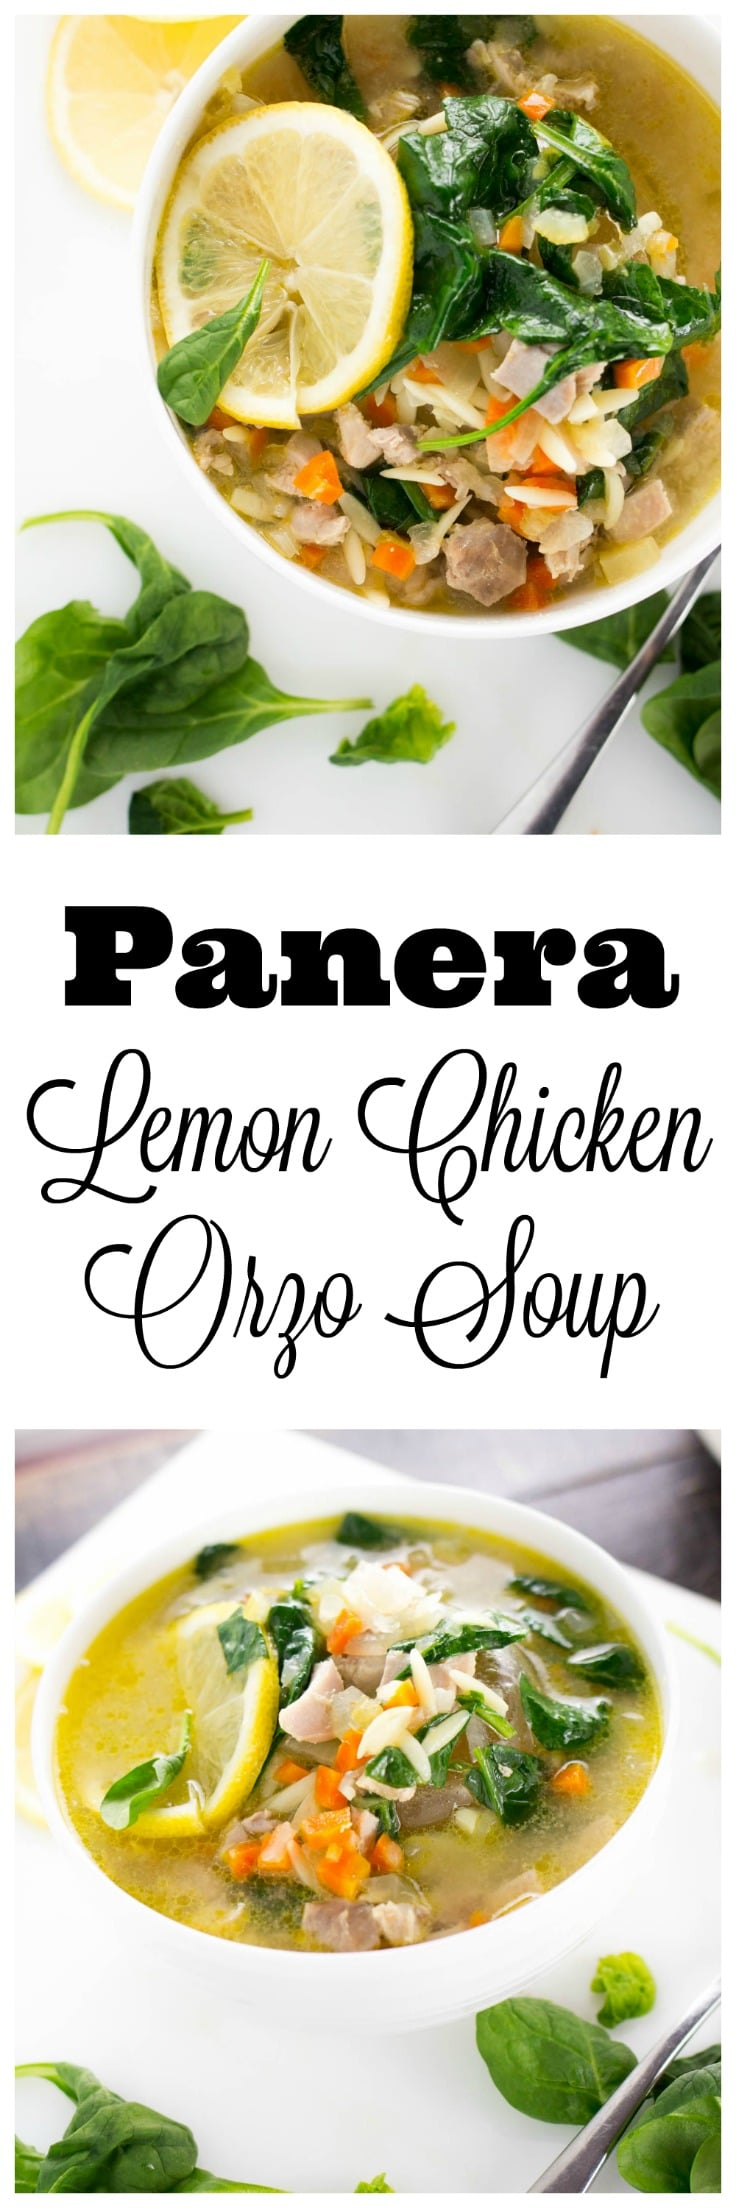 Panera Lemon Chicken Orzo Soup - Girl and the Kitchen